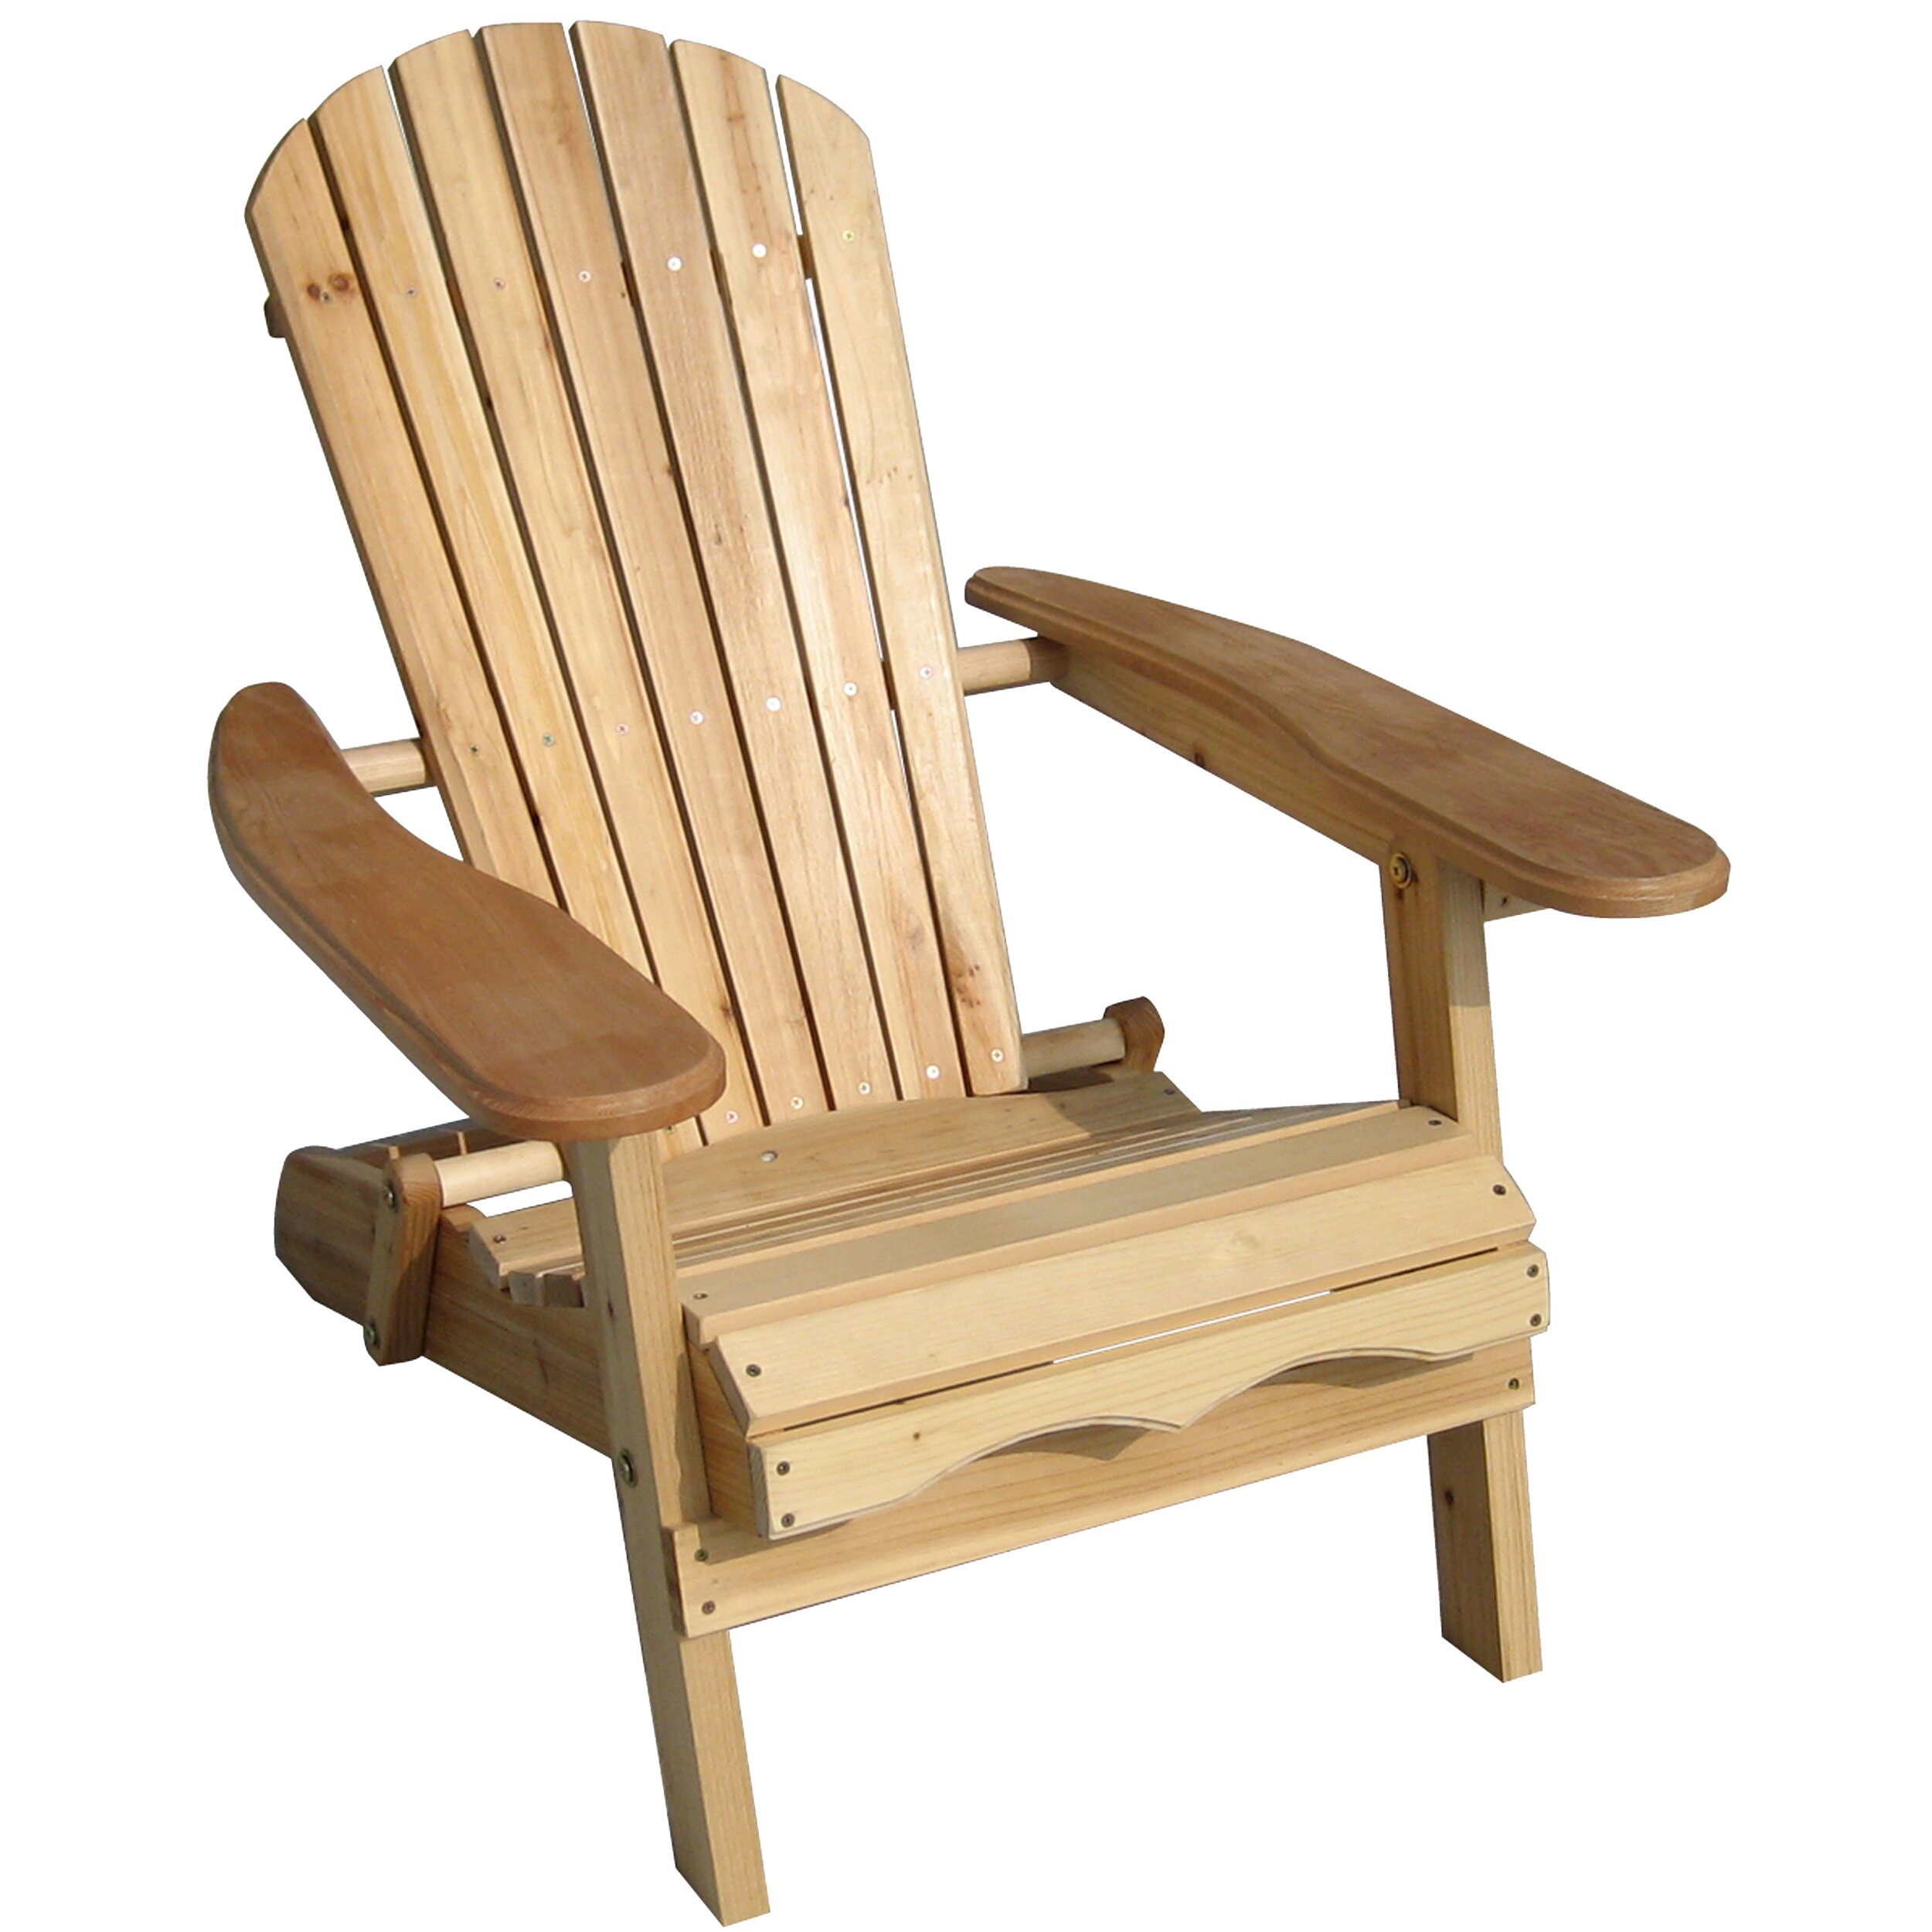 Atlantic Outdoor Merry Garden Adirondack Chair Reviews Wayfair